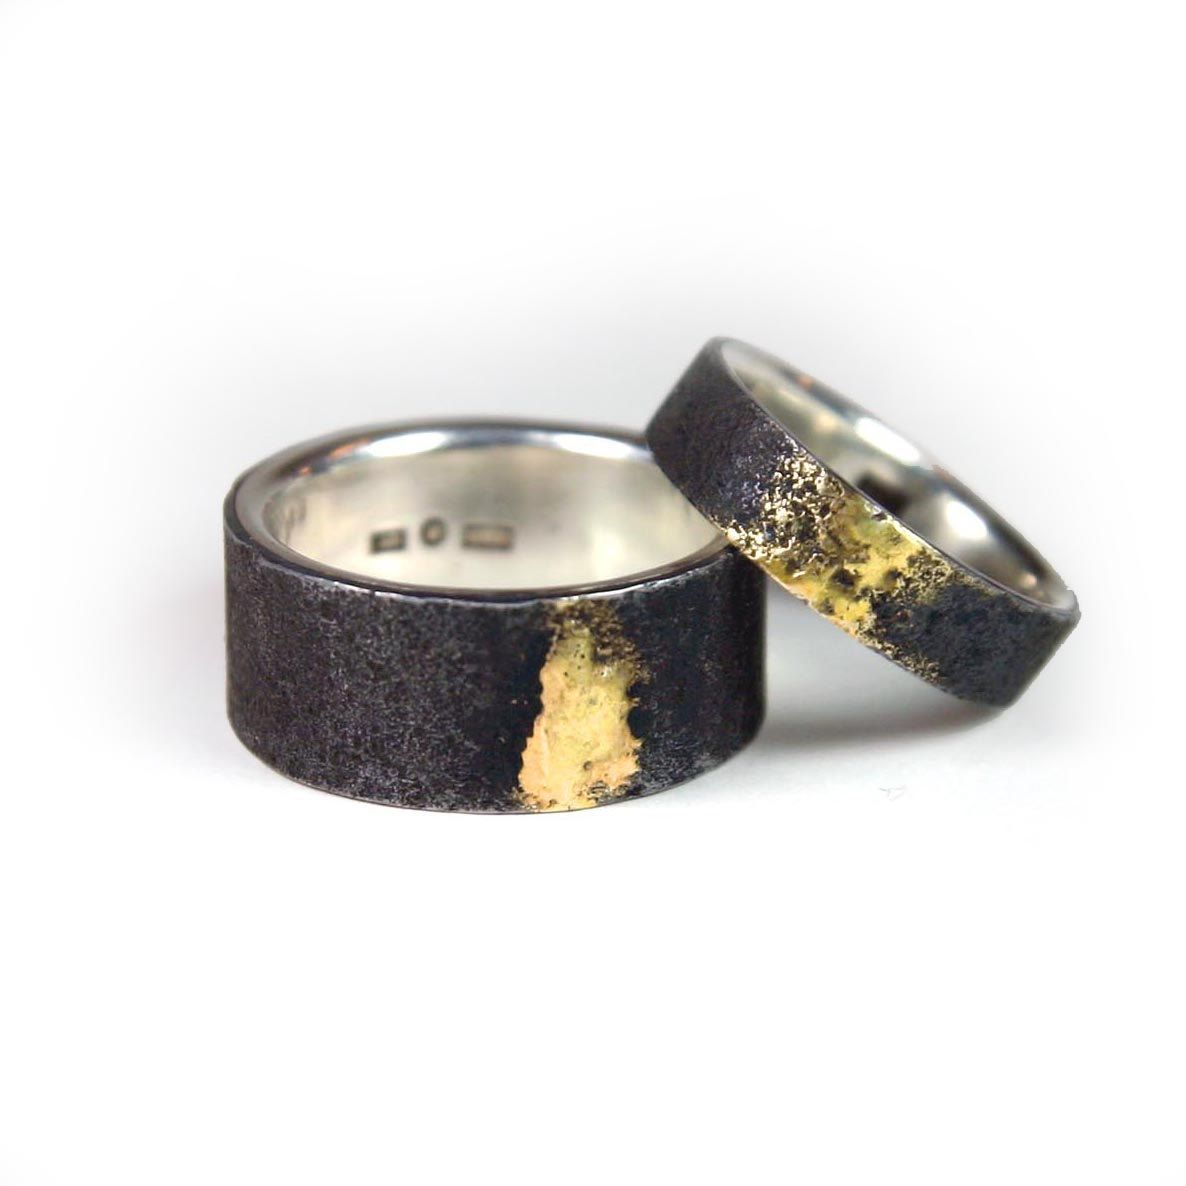 Iron And Silver Wedding Ring With Golden Soldering By Robguldsmed 830 00